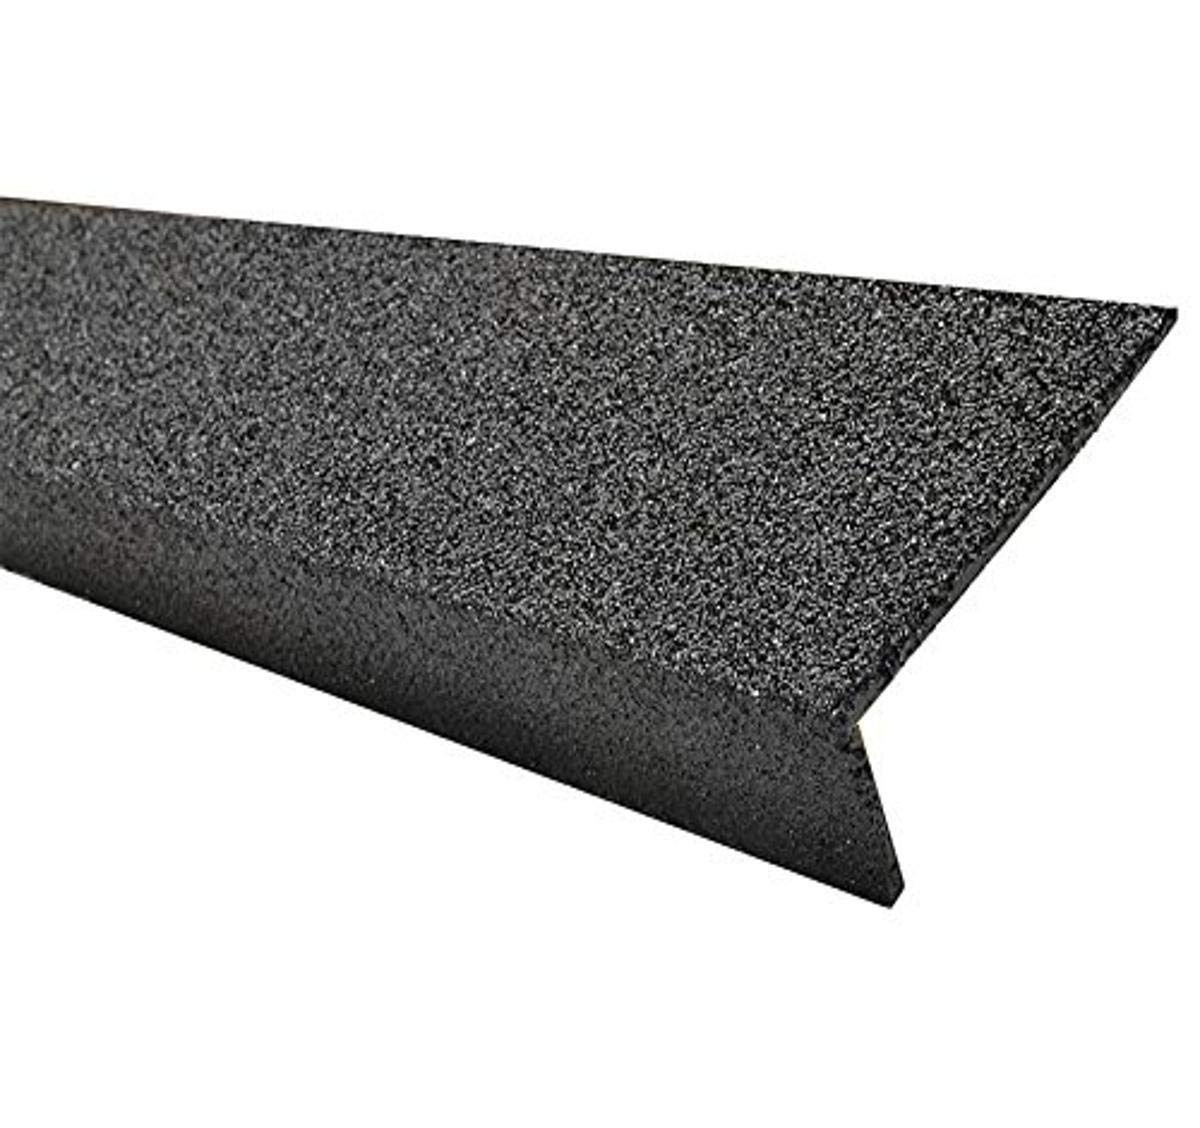 MASTER Max 86% Max 89% OFF OFF STOP 9N12003X004819H Fiber Glass Stair Nosing Black Step